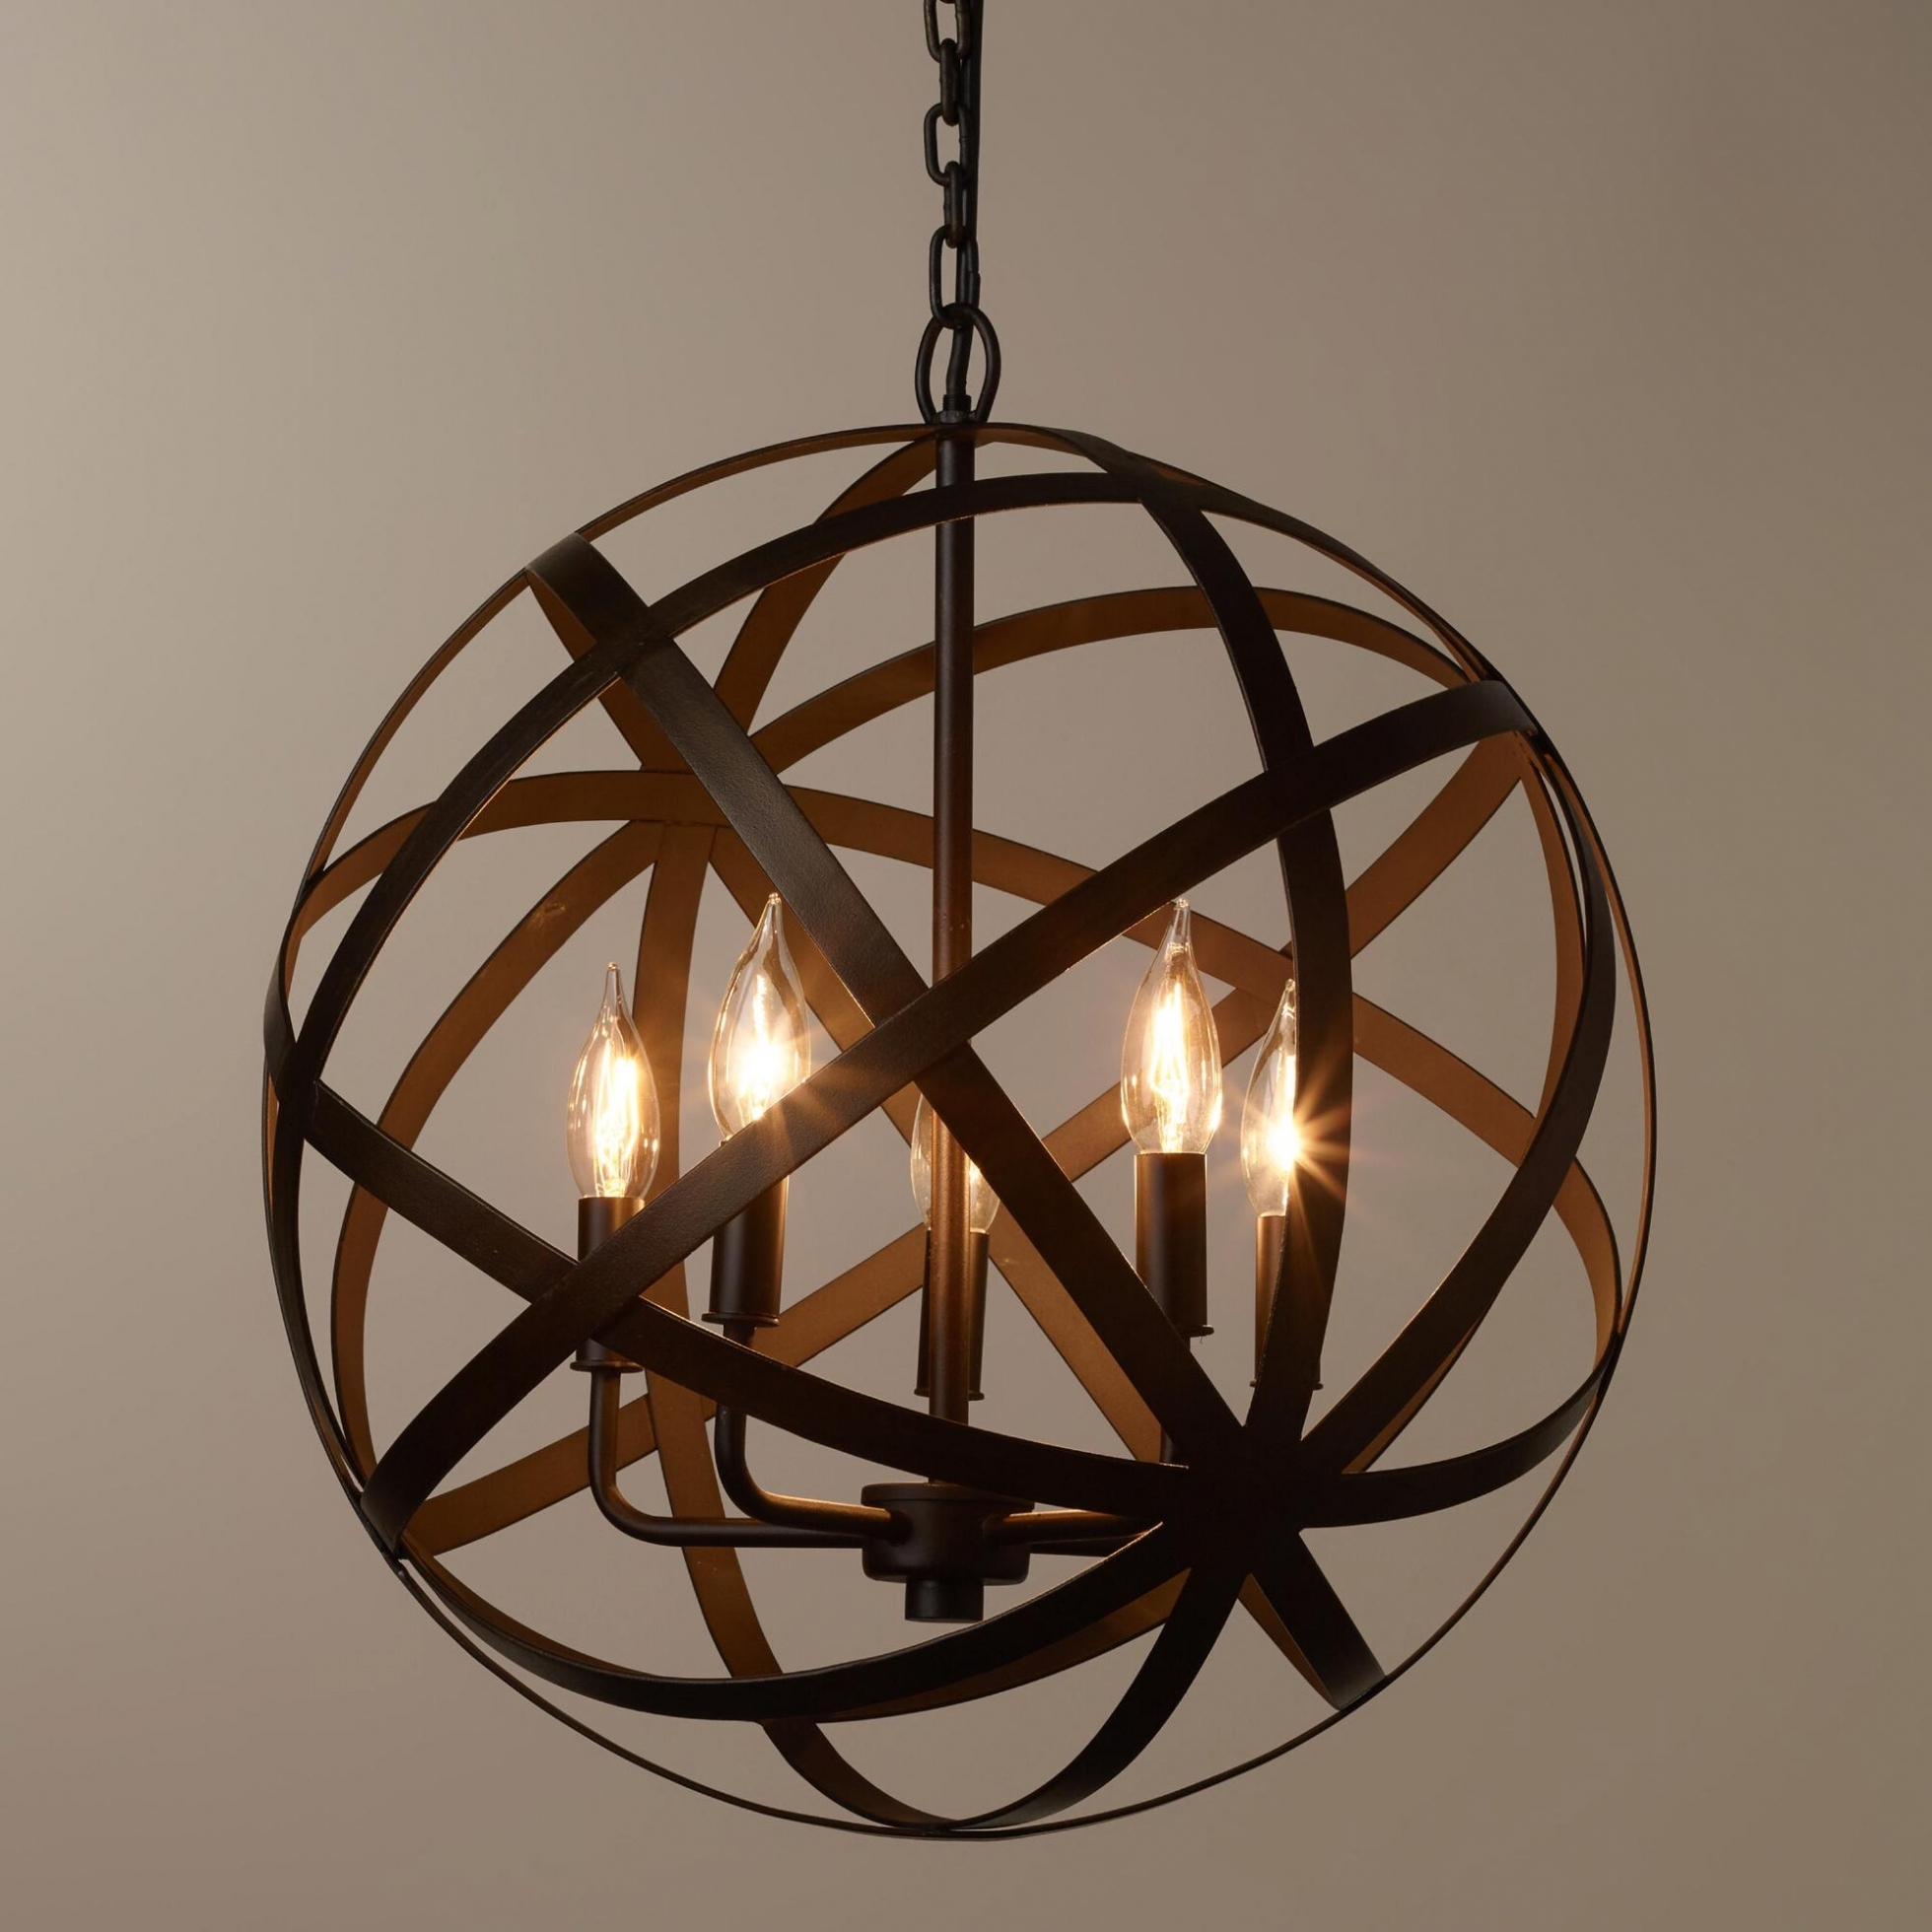 Recent Home Decor: Pendant Lights (View 11 of 15)